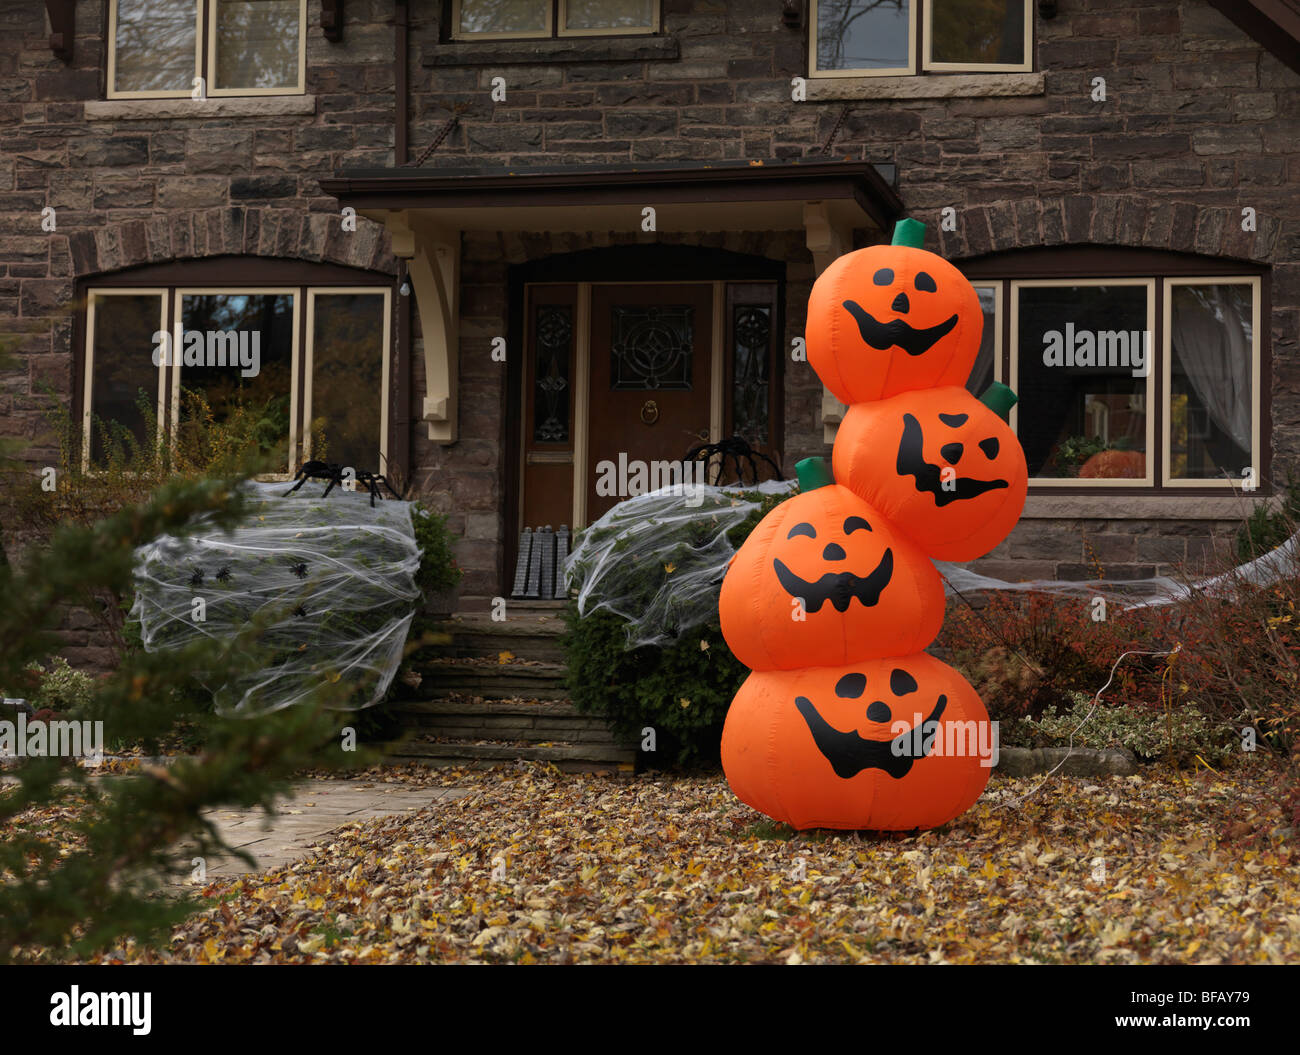 Decorated for halloween house in toronto ontario canada stock photo royalty free image - Halloween decorations toronto ...